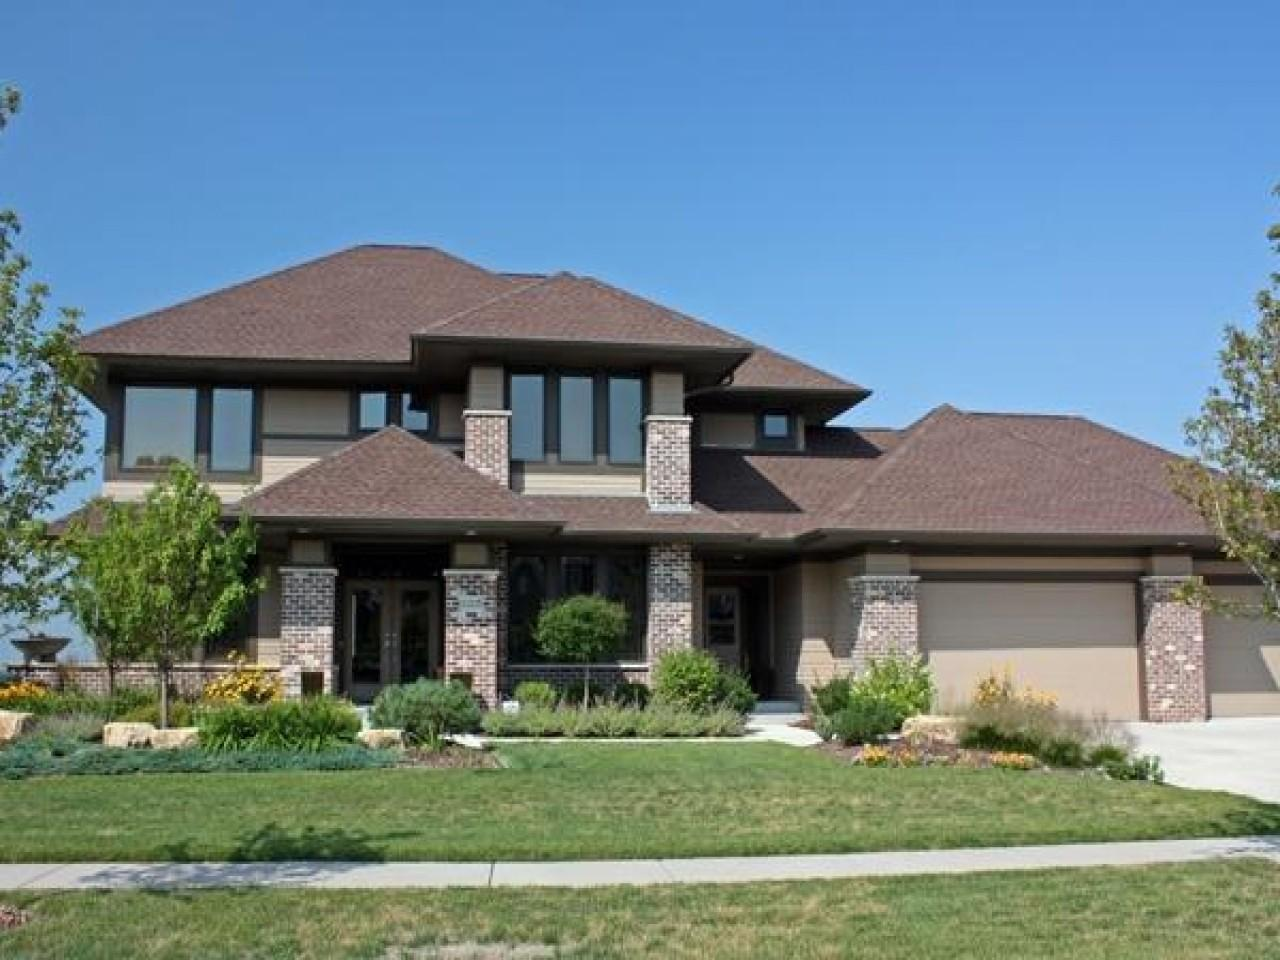 Modern Prairie Style House Plans Ranch Homes Contemporary